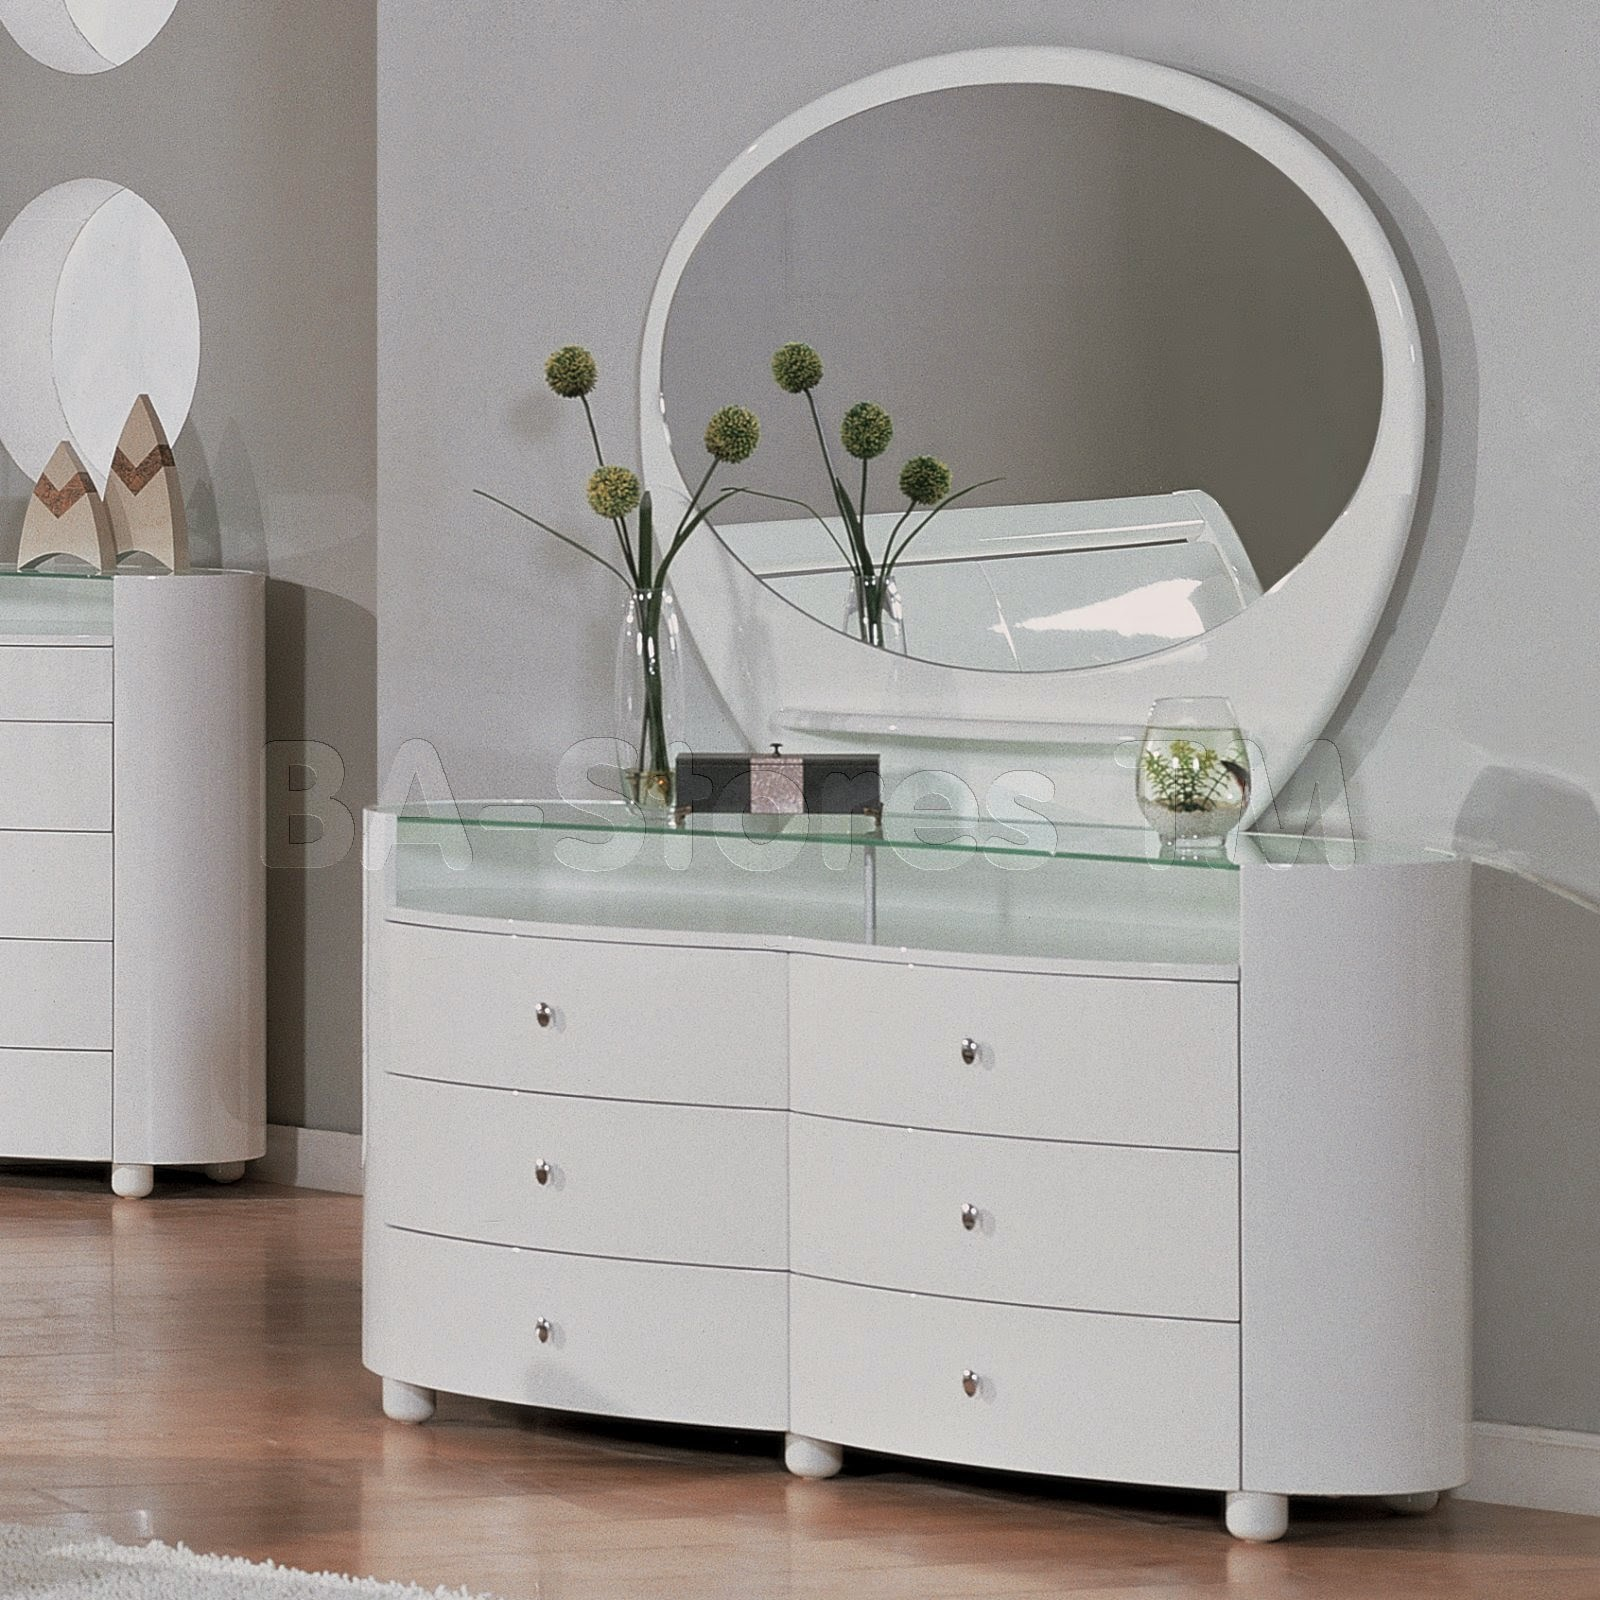 Mirrored Bedroom Dresser Cheap Dresser Sets Medium Size Of Espresso 4 Drawer Dresser Big